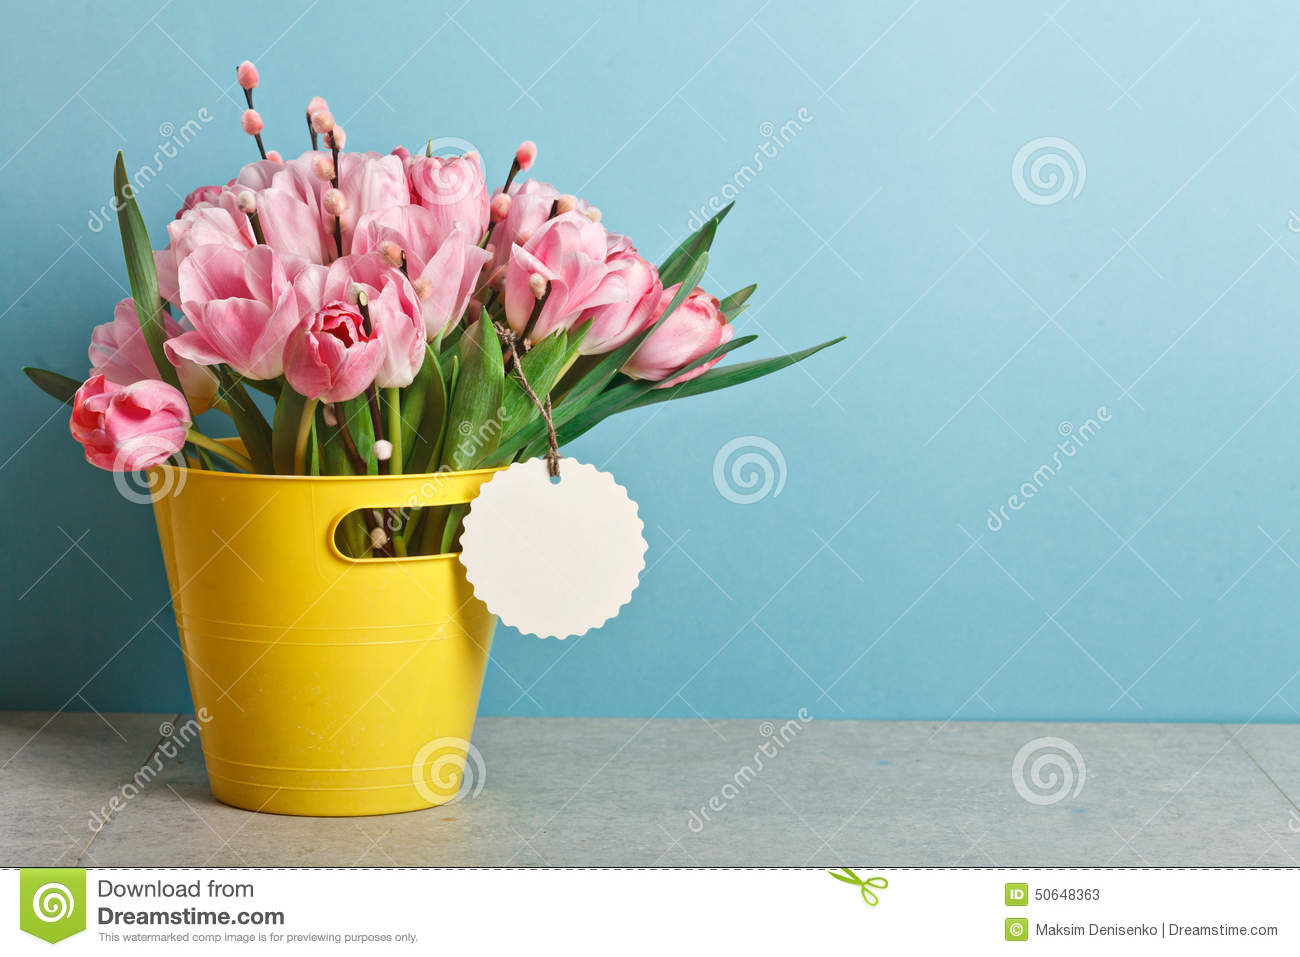 Bouquet of pink fresh tulips with pussy-willow in yellow bucket